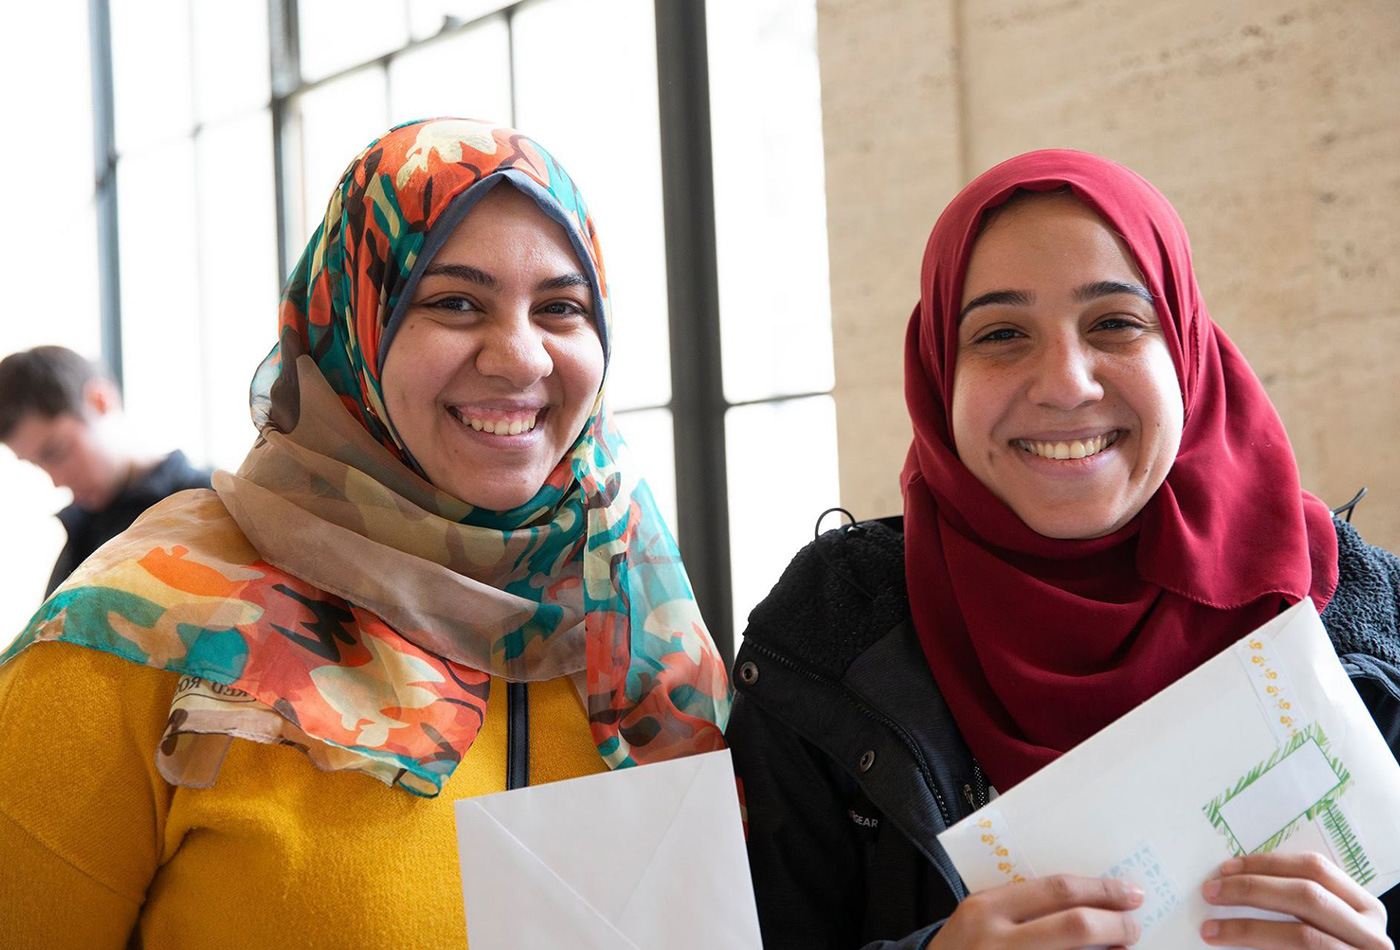 Two women smile holding the letters that they've written.